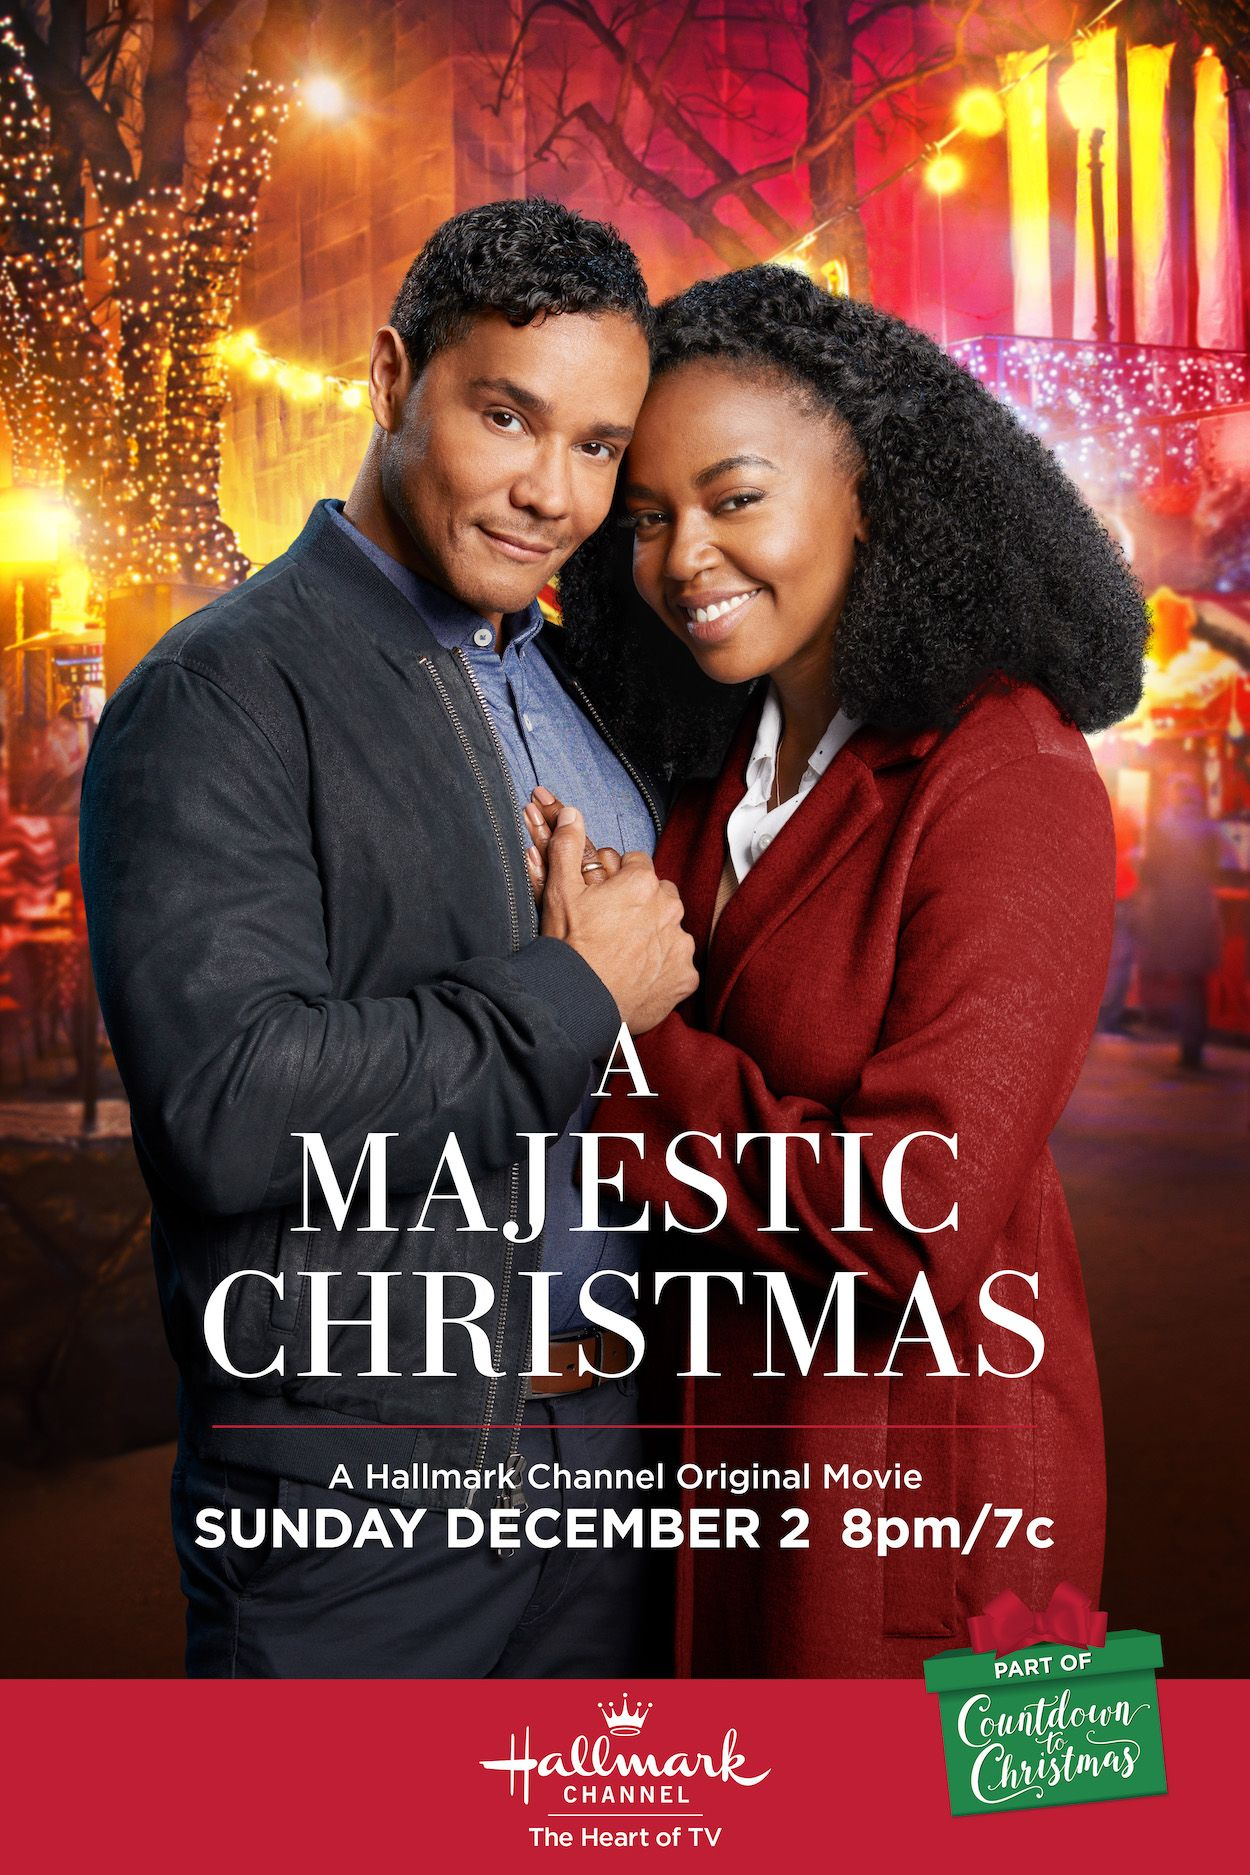 Jerrika Hinton And Christian Vincent Will Create A Majestic Christmas In The Town Hallmark Channel Christmas Movies Hallmark Christmas Movies Hallmark Movies